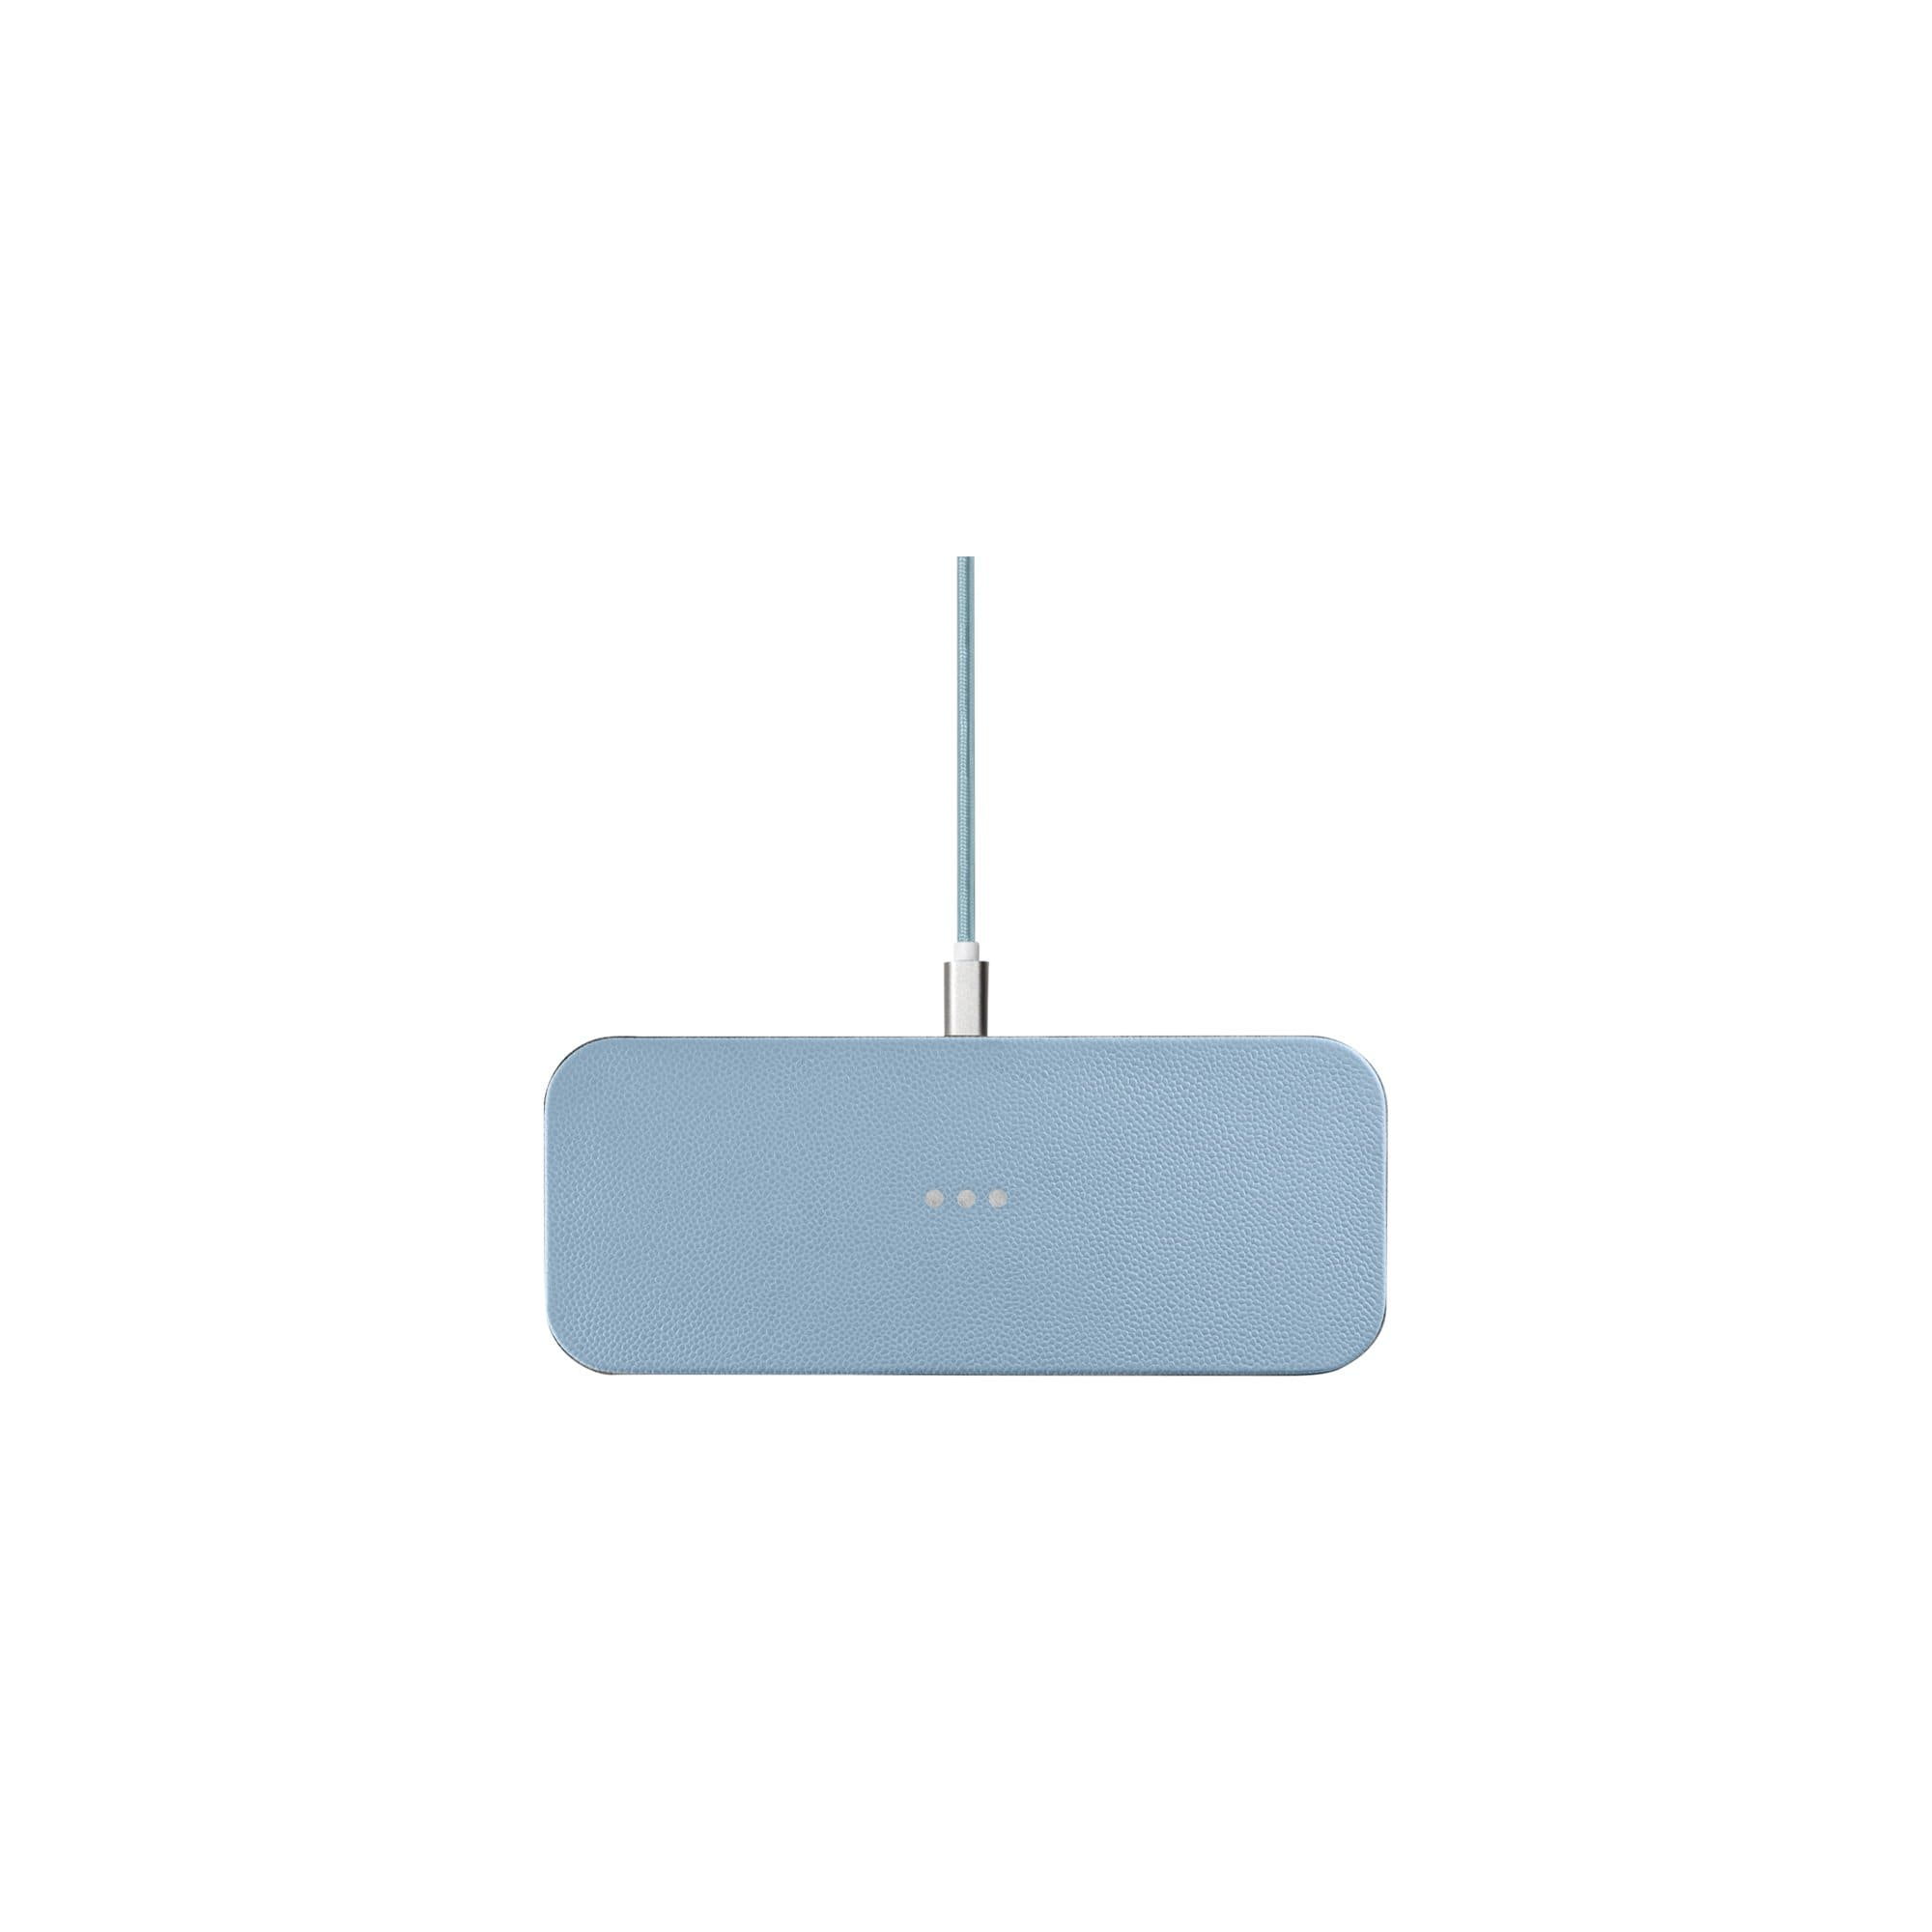 CATCH:2 Wireless Charger in Pacific Blue